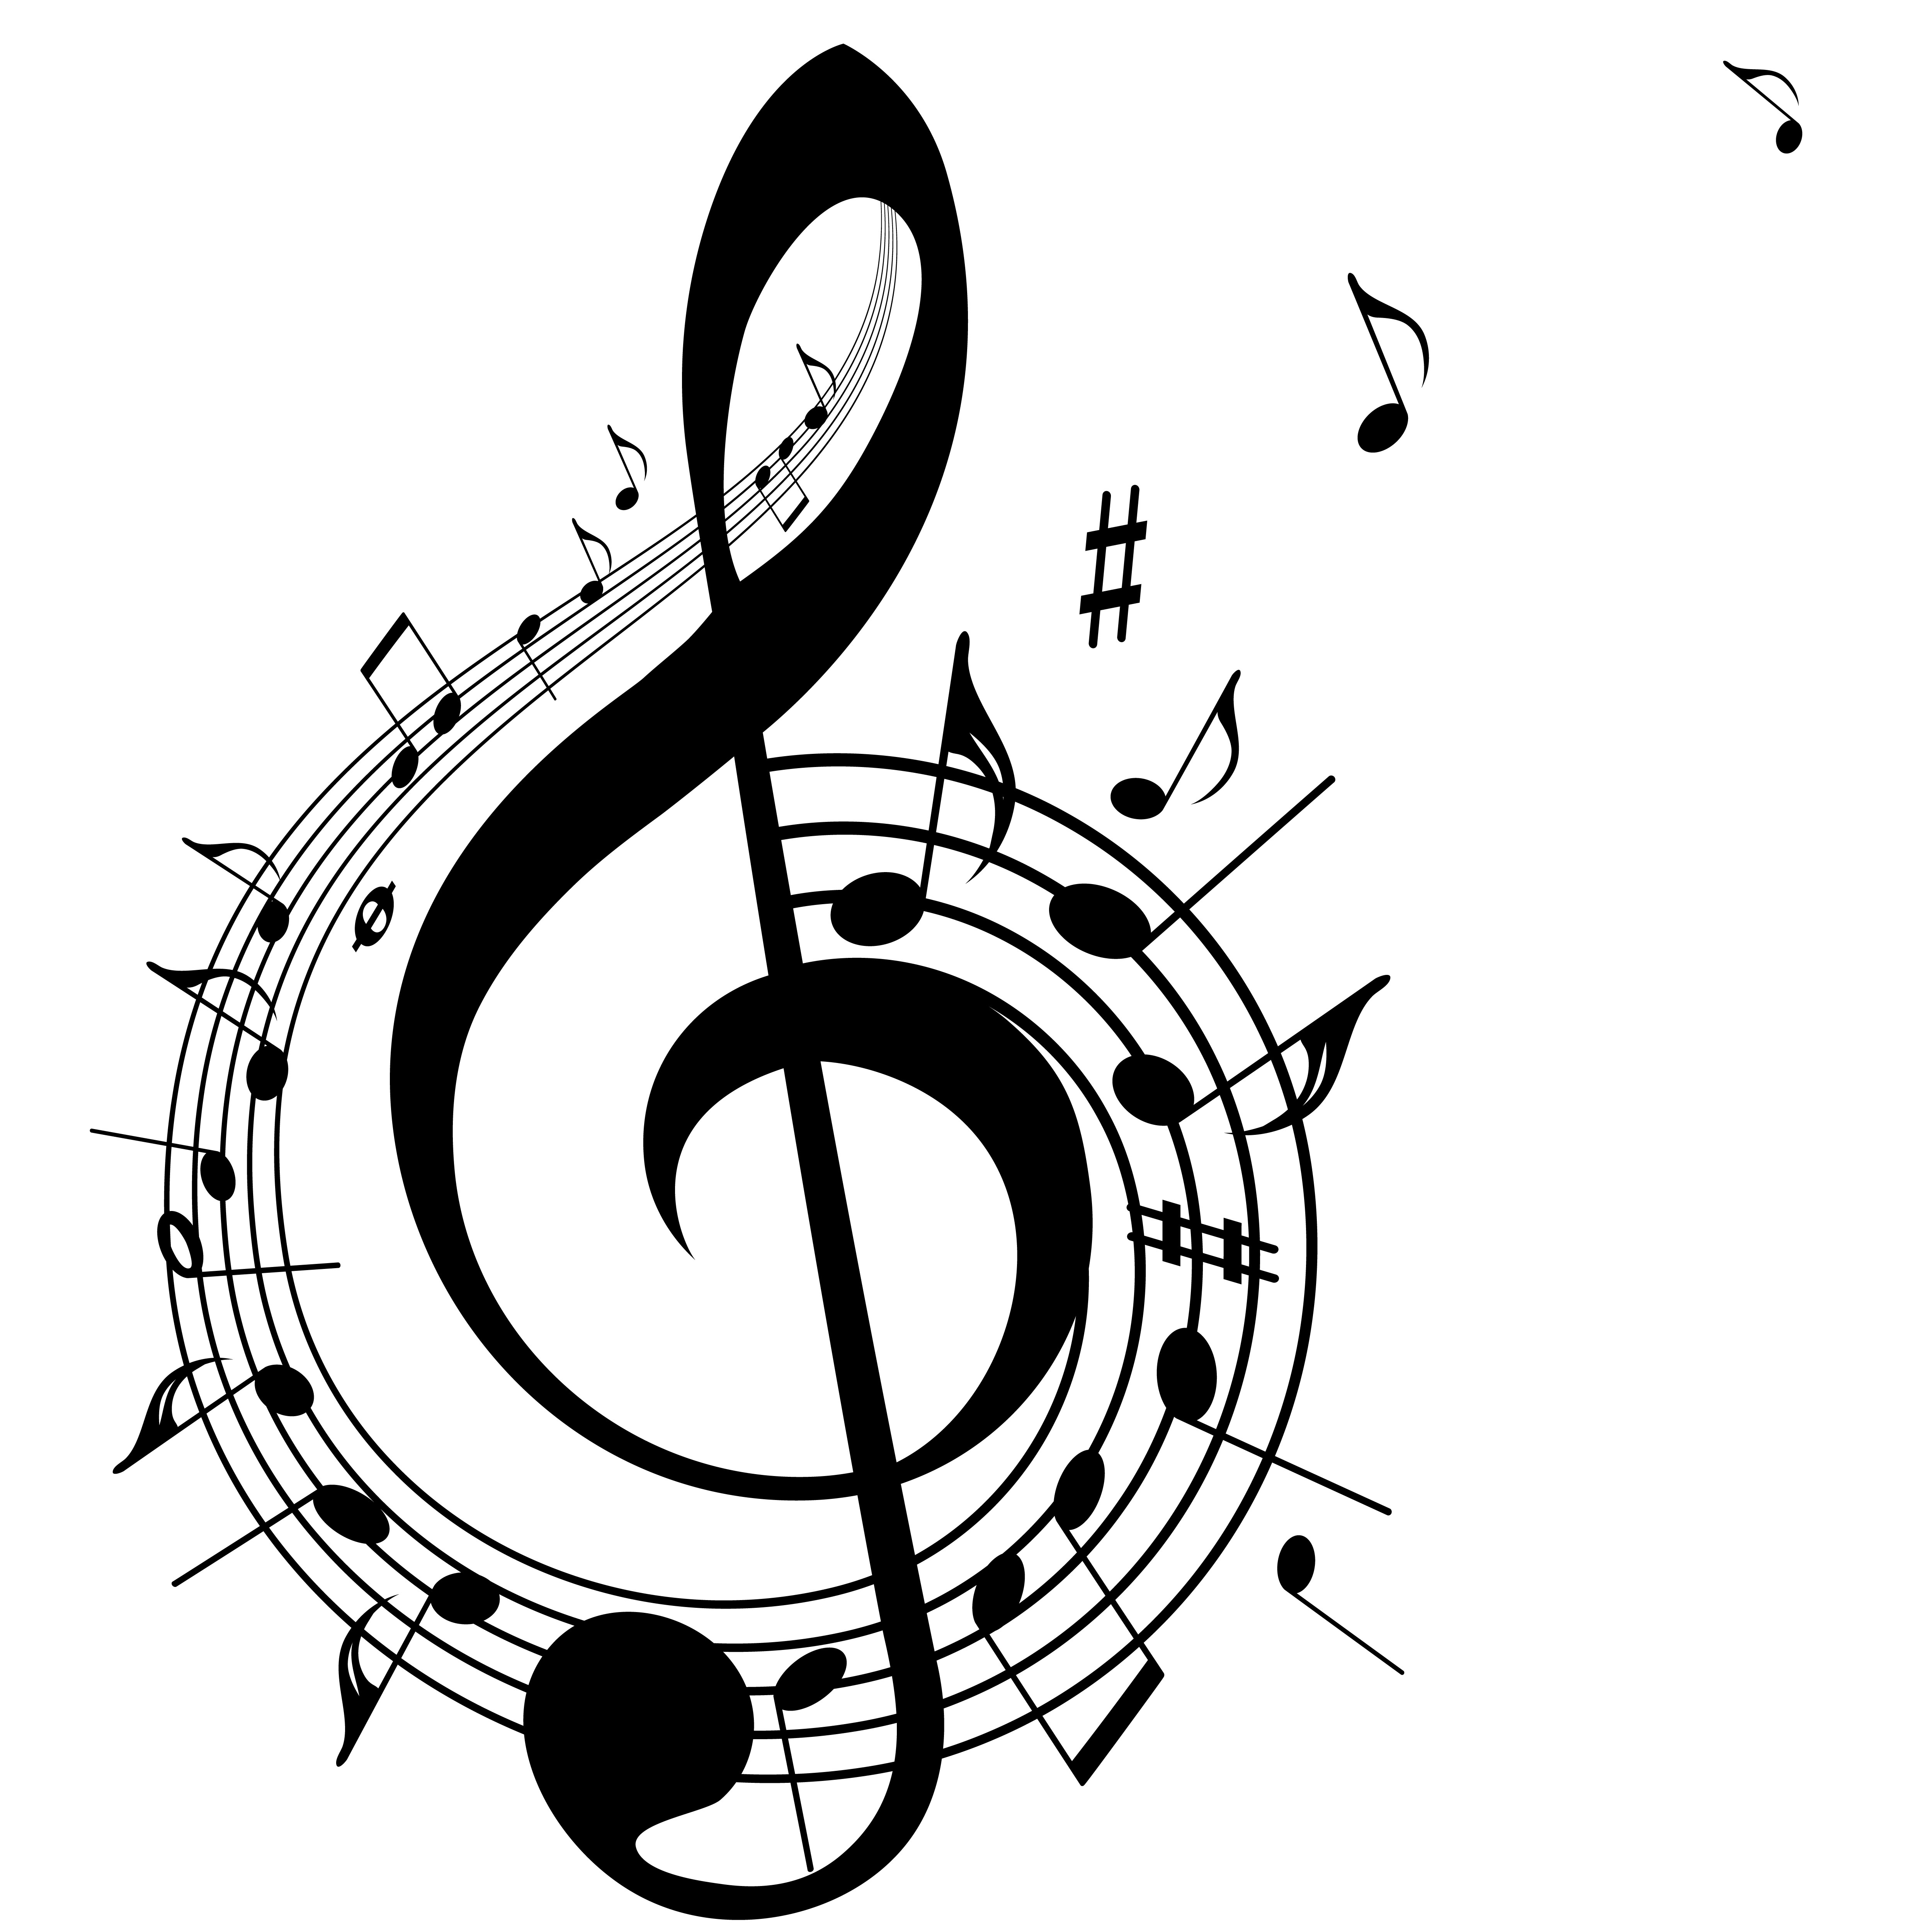 010 Music Research Paper Imposing Topics Education Classical Industry Full